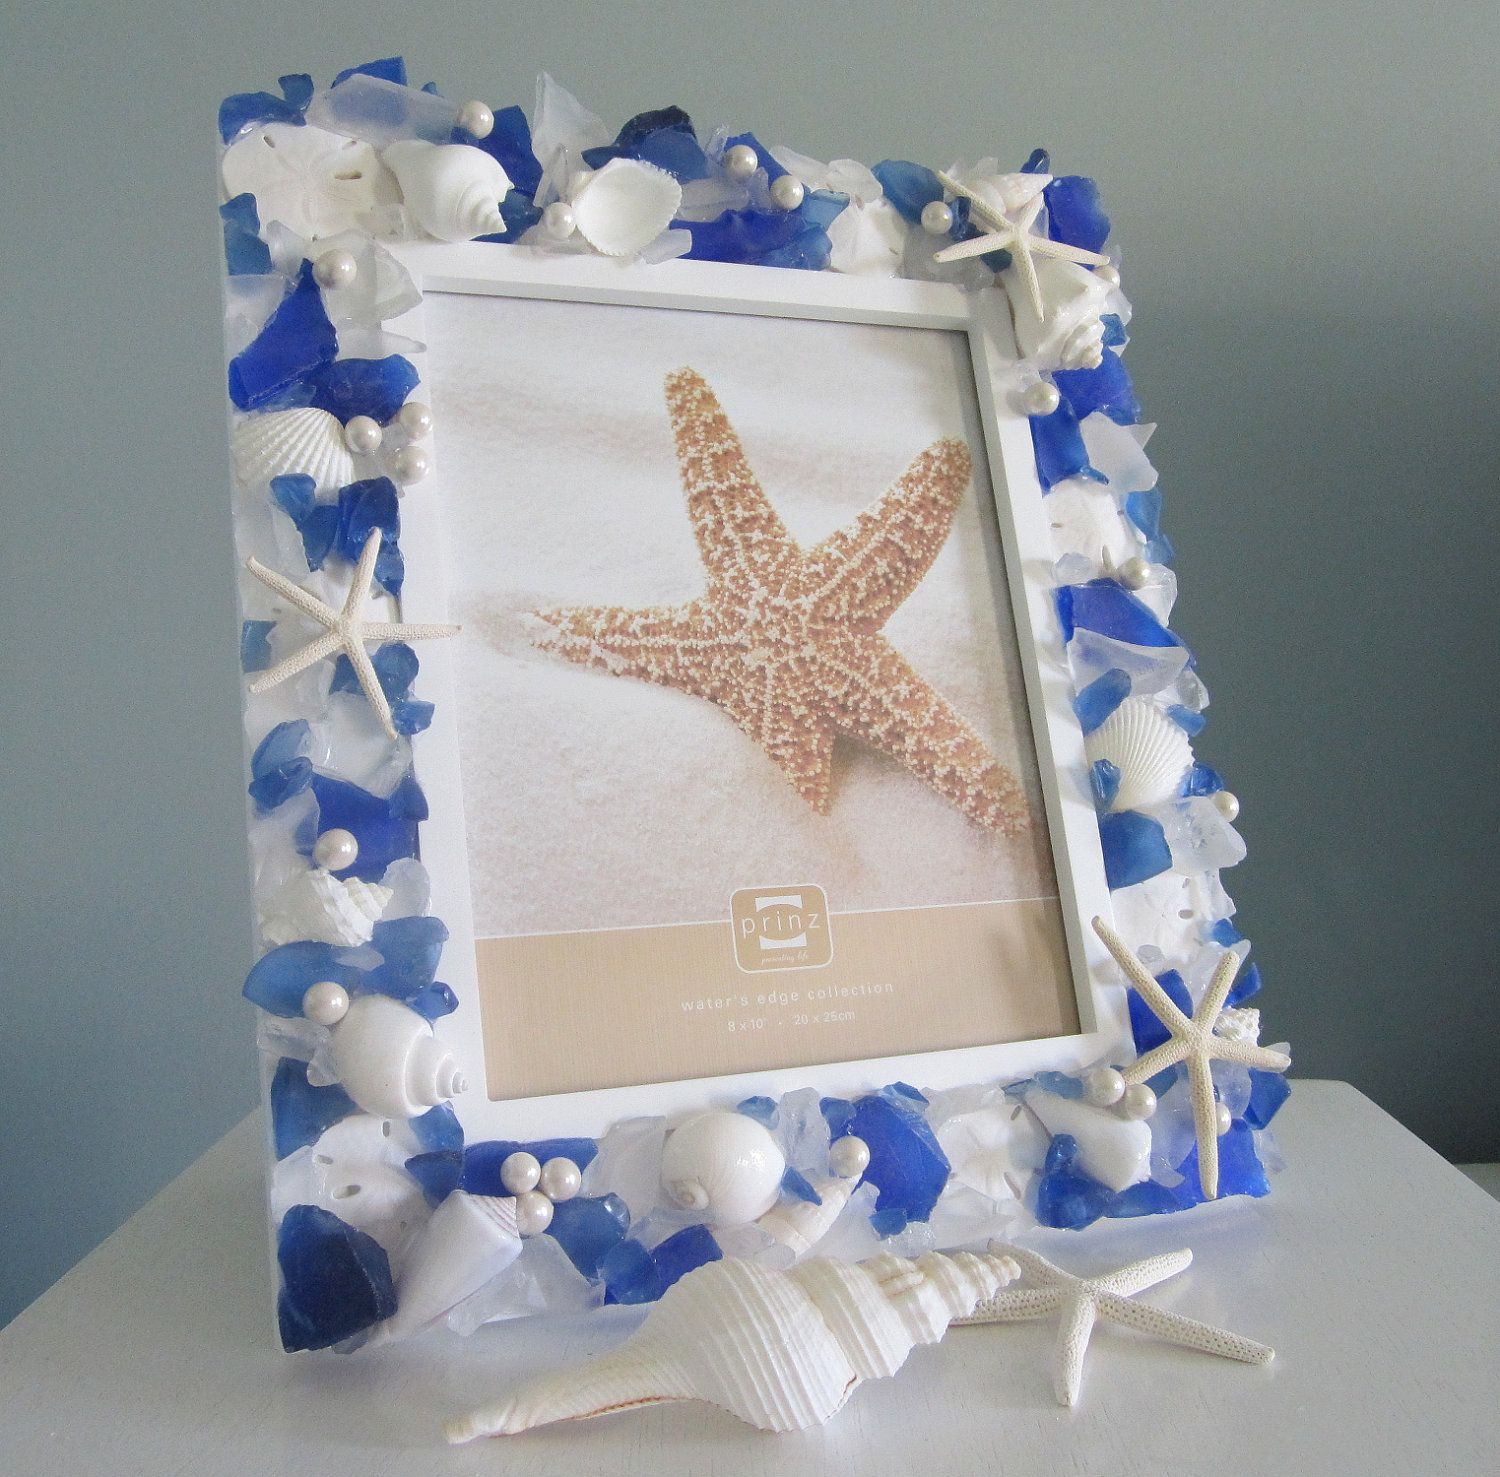 Beach decor sea glass picture frame nautical decor beach glass beach decor sea glass picture frame nautical decor beach glass photo frame beach glass frame sea glass frame 8x10 dark blue sgf810 jeuxipadfo Images